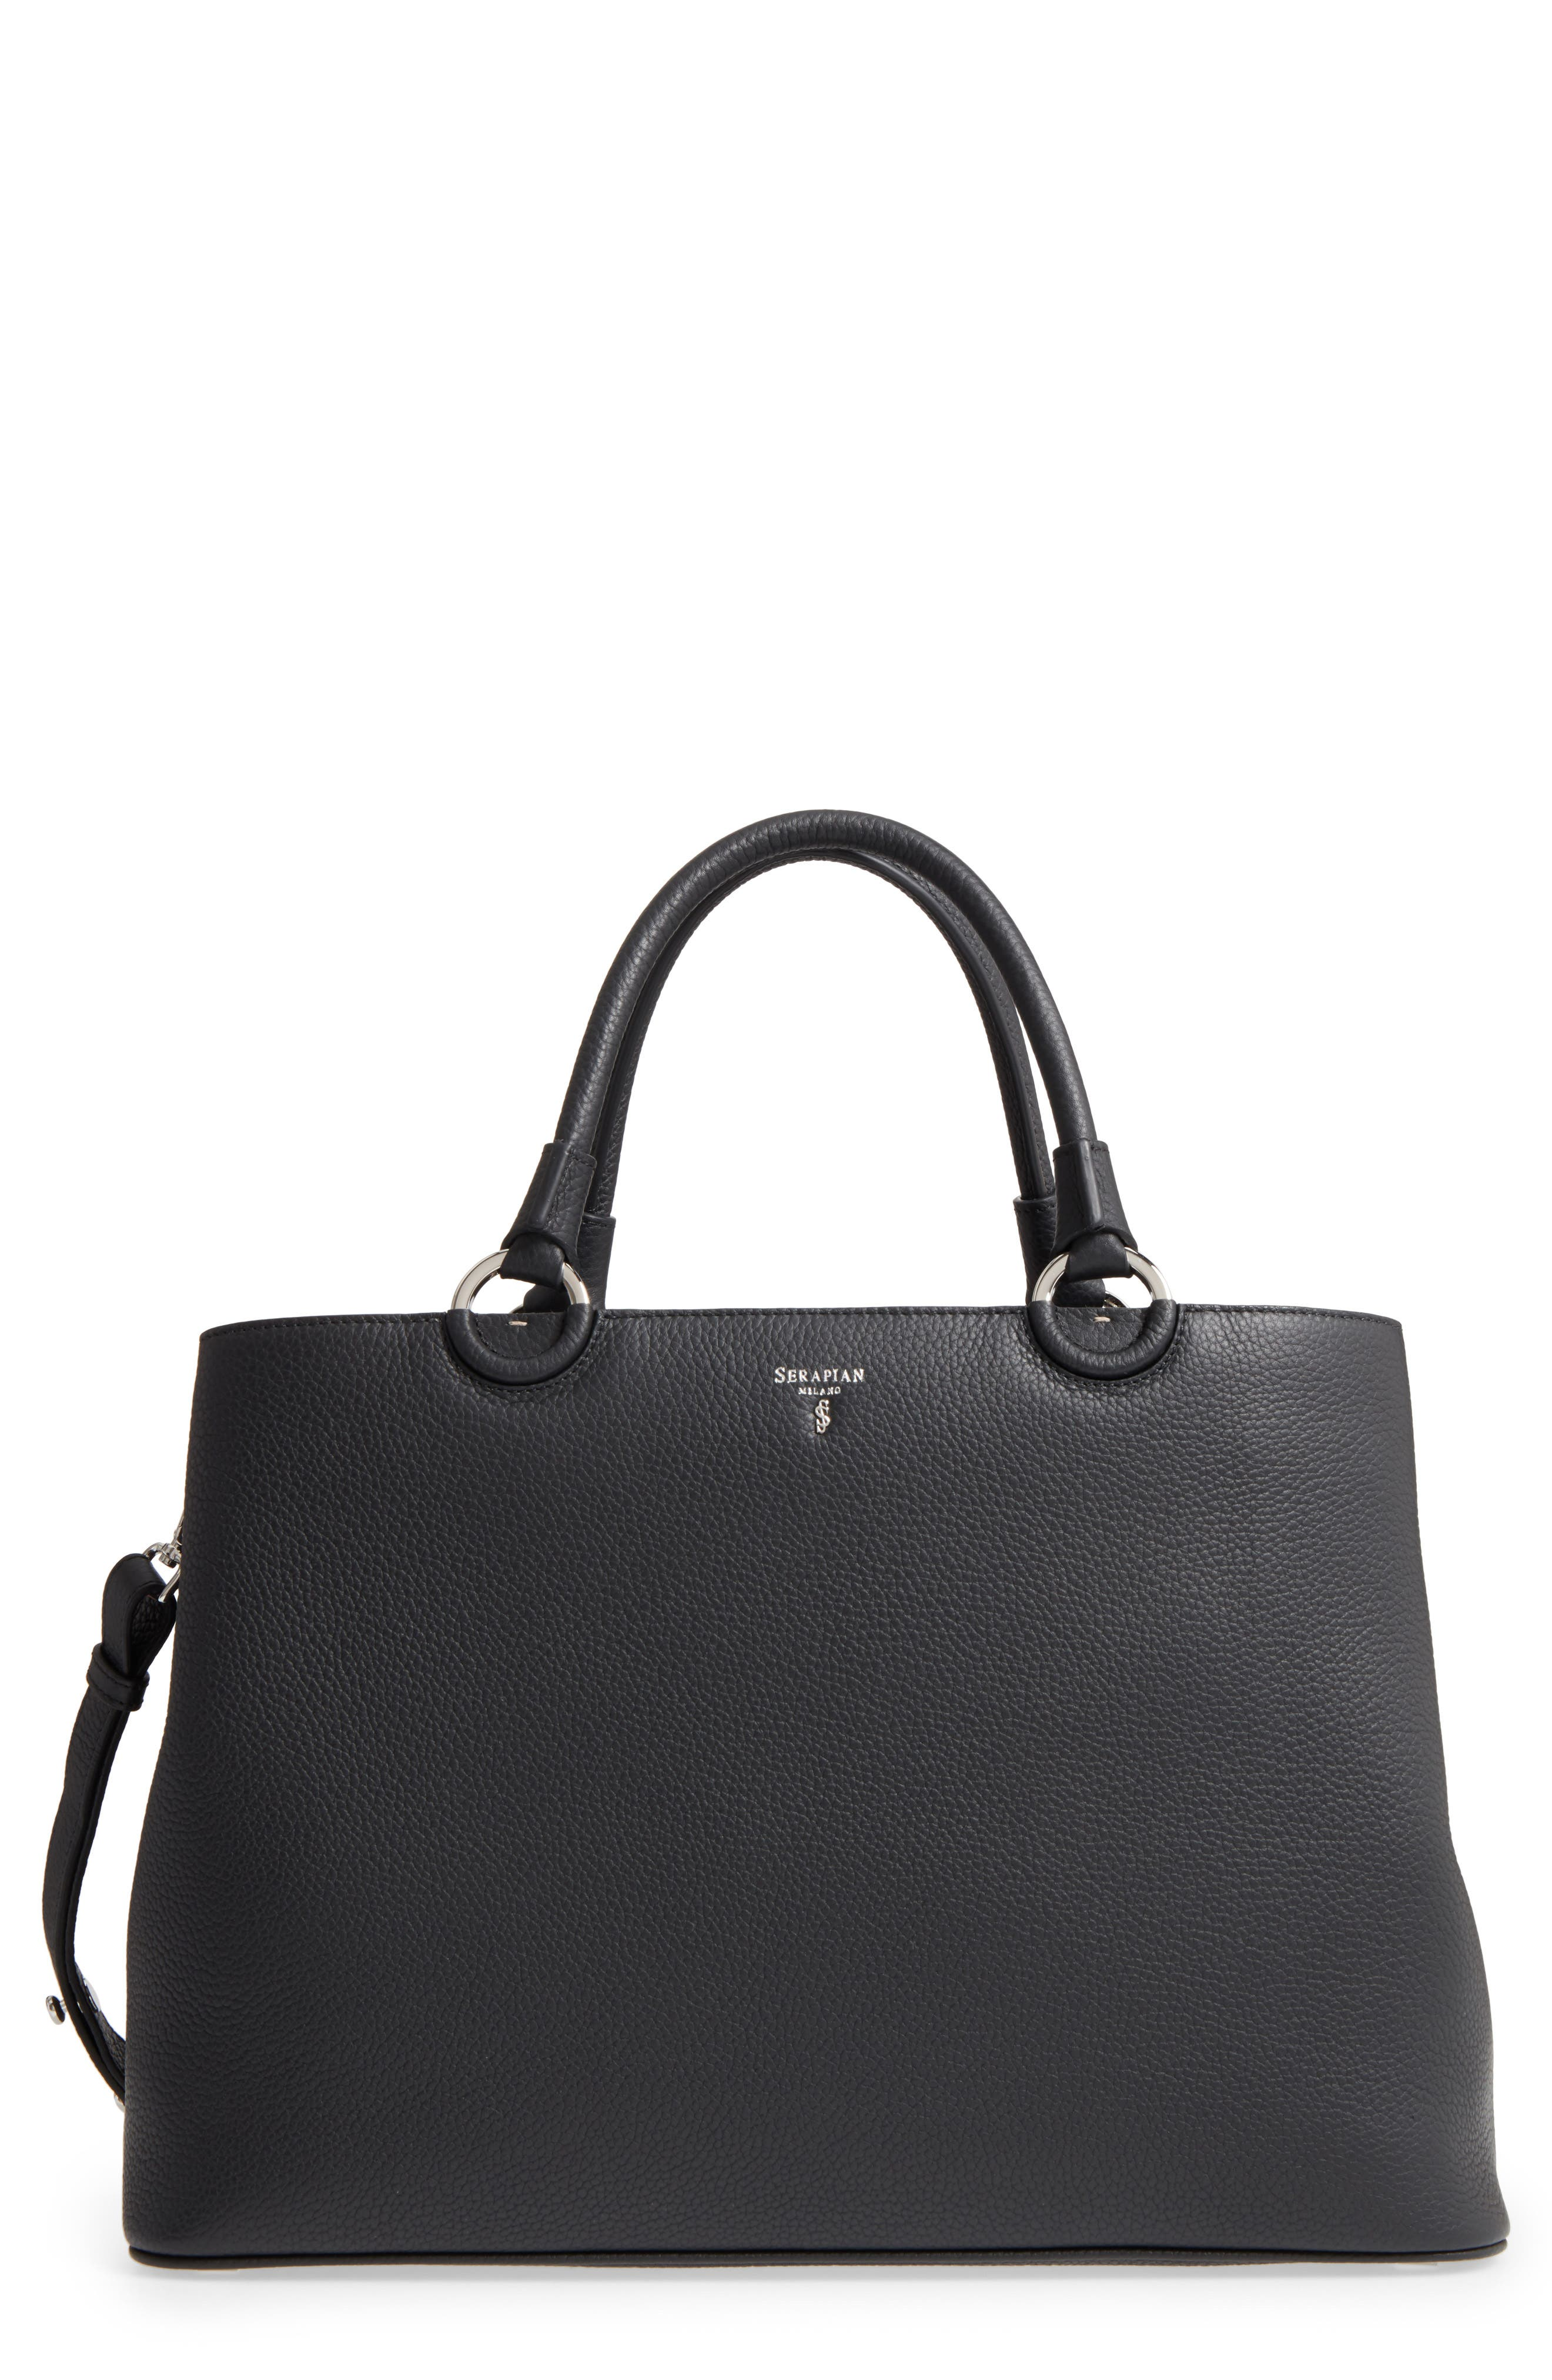 Veronica Cachemire Leather Tote,                         Main,                         color, 001